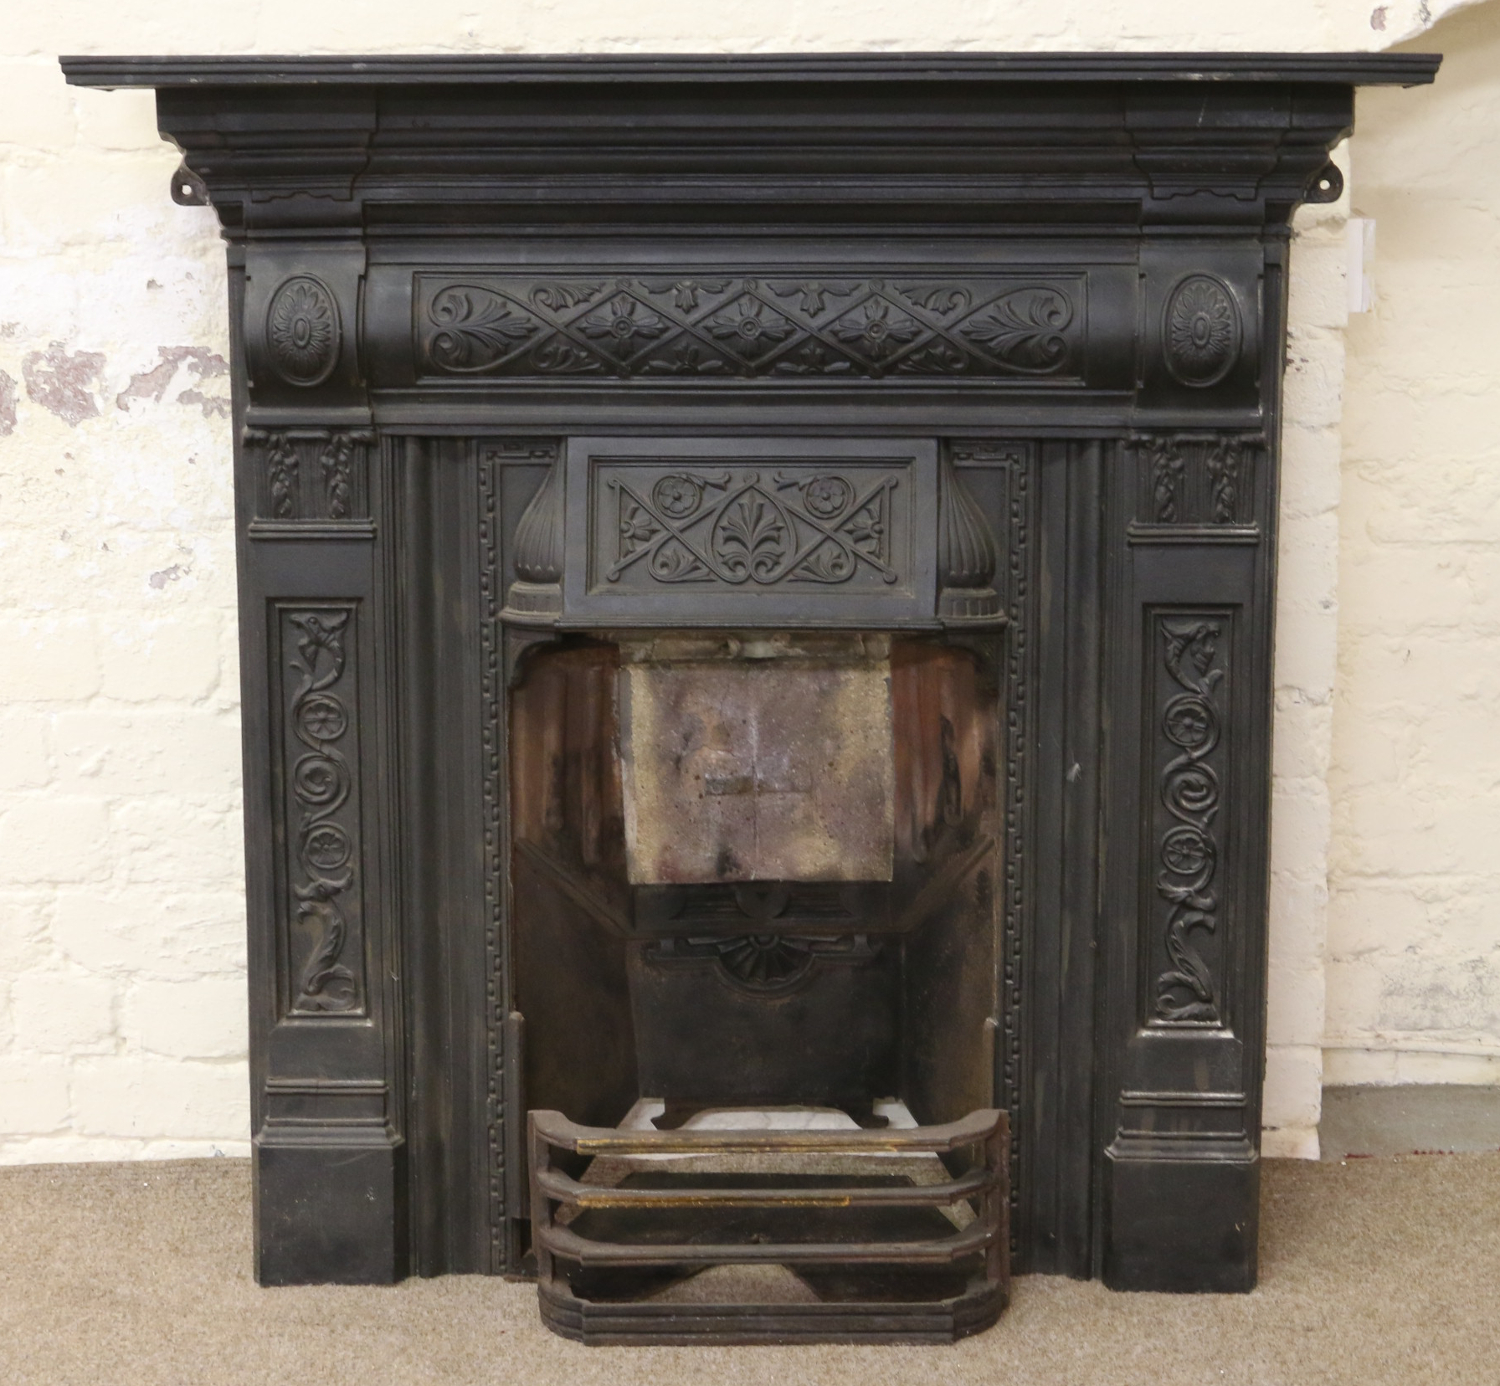 Lot 1124   An Ornate Victorian Painted Cast Iron Fireplace With Fire Back  Plate And Front